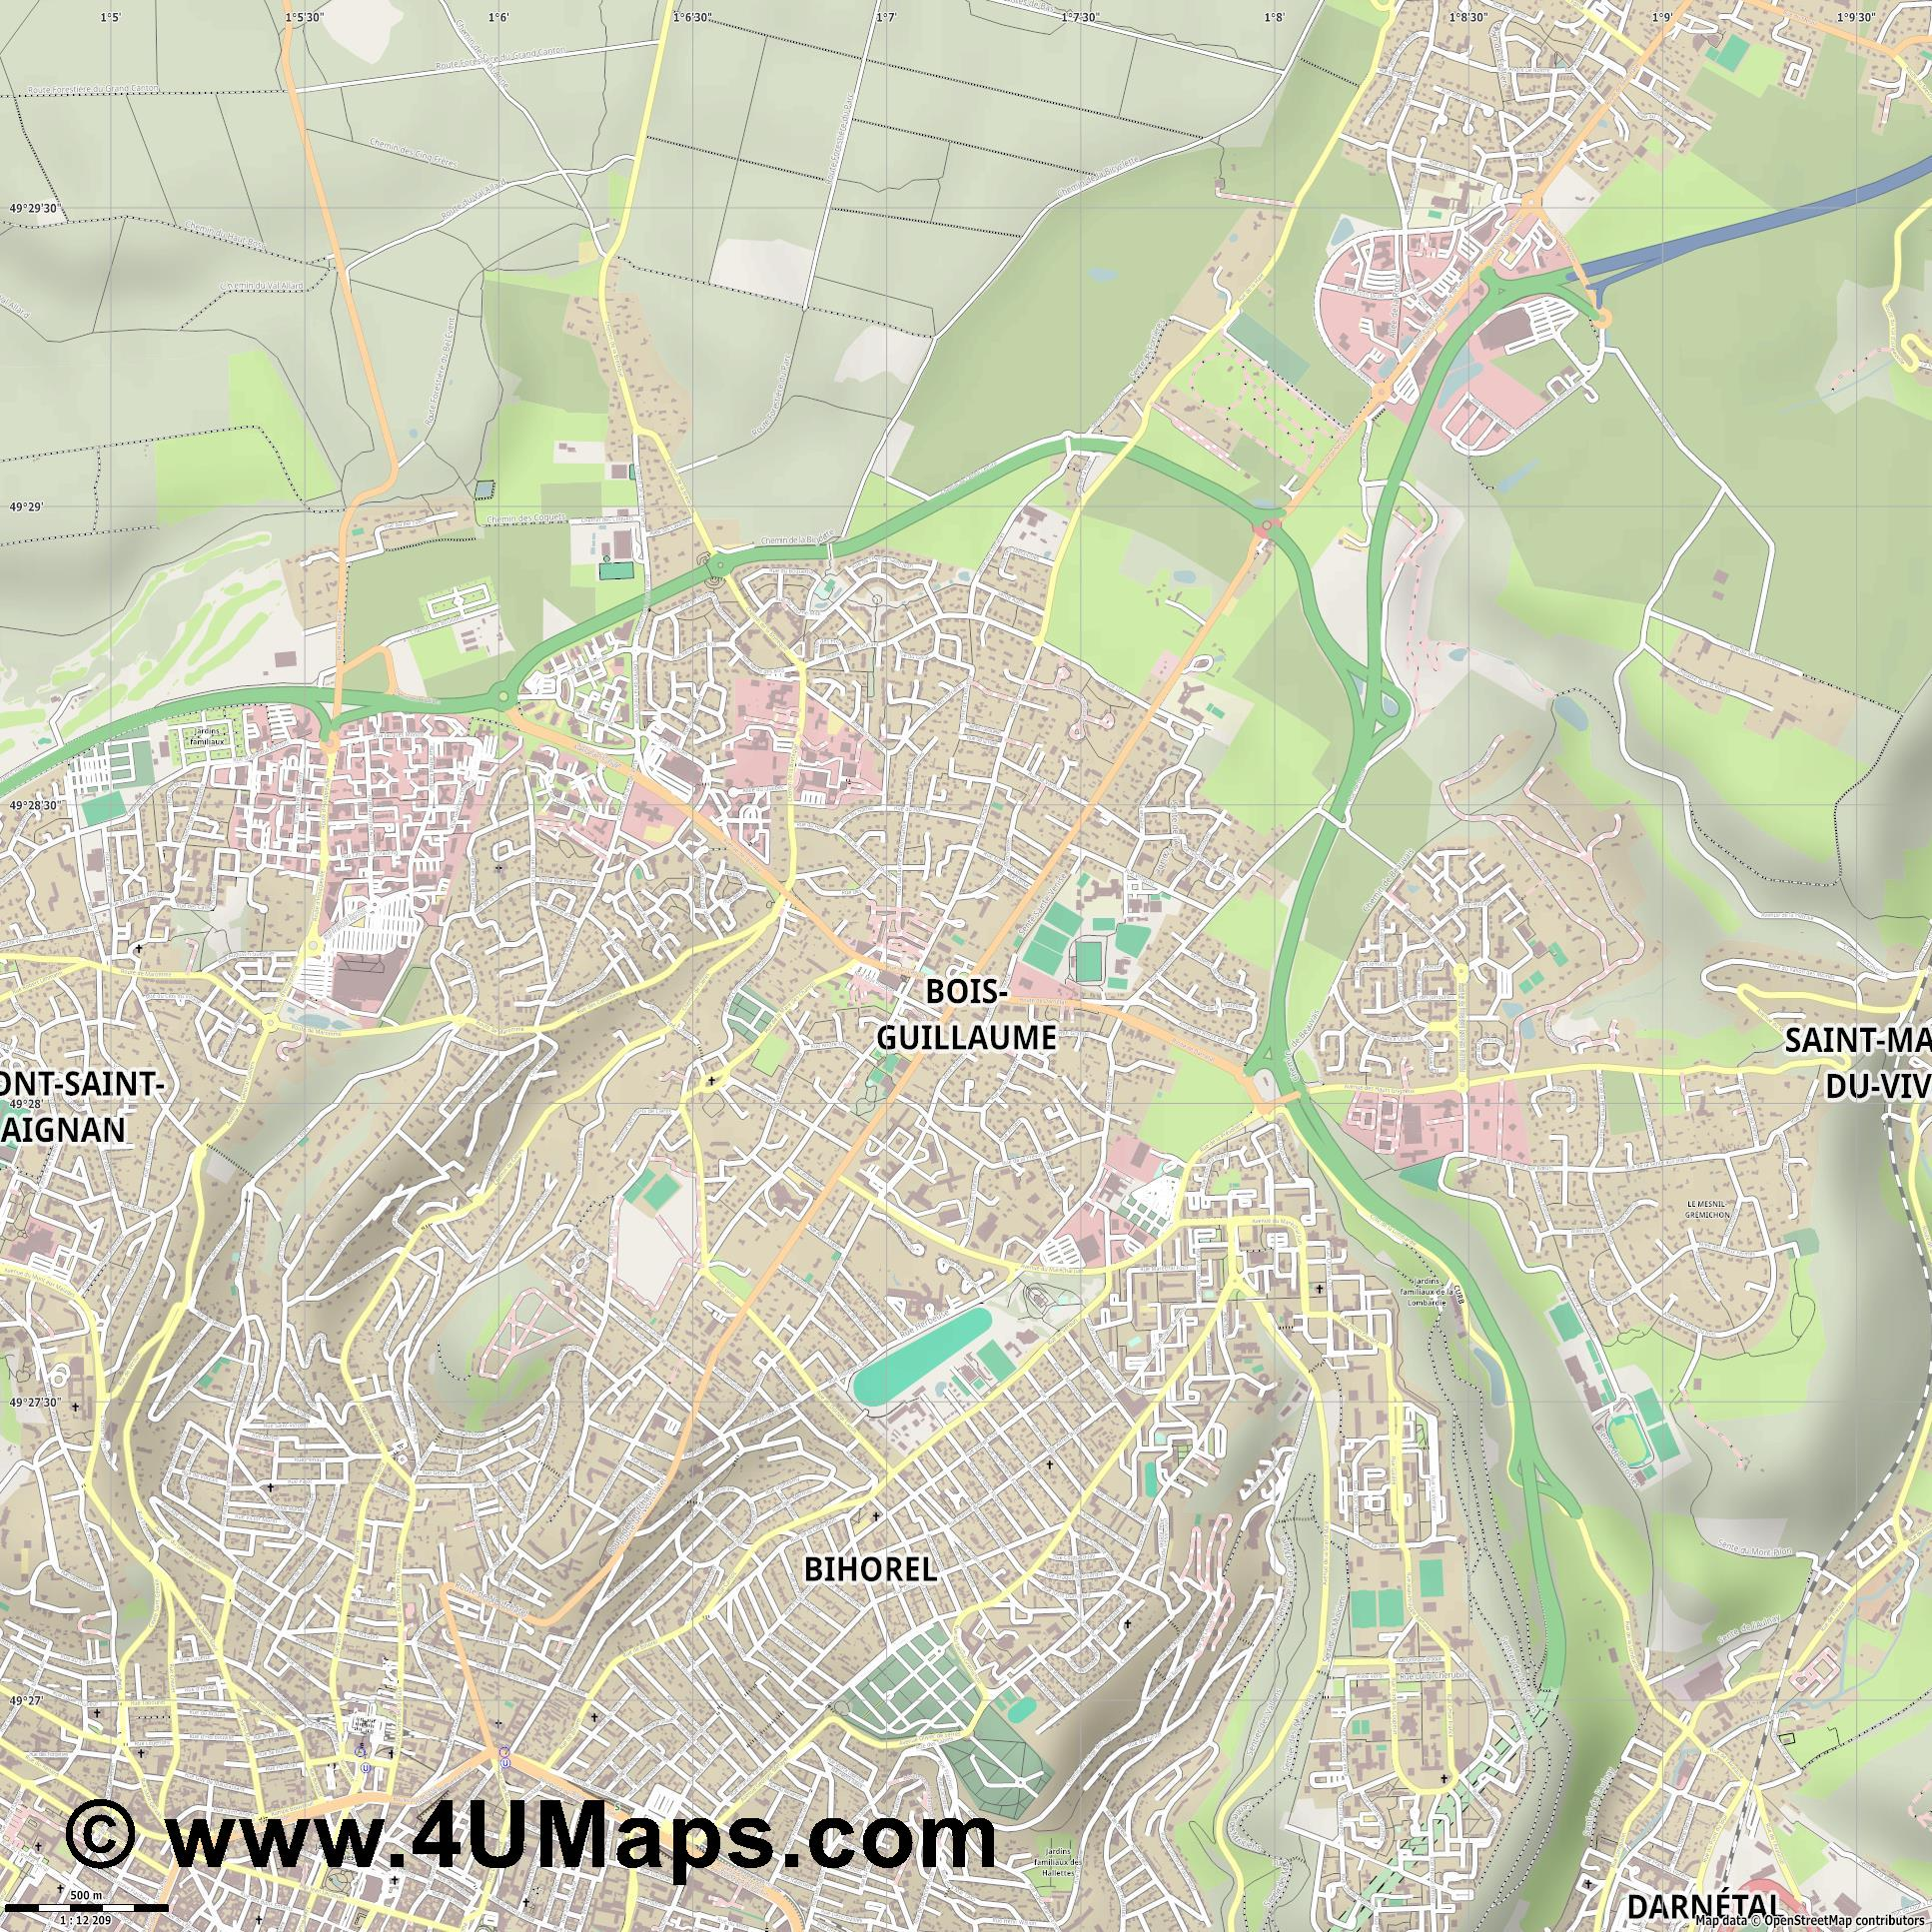 Bois Guillaume Bihorel  jpg ultra high detail preview vector city map